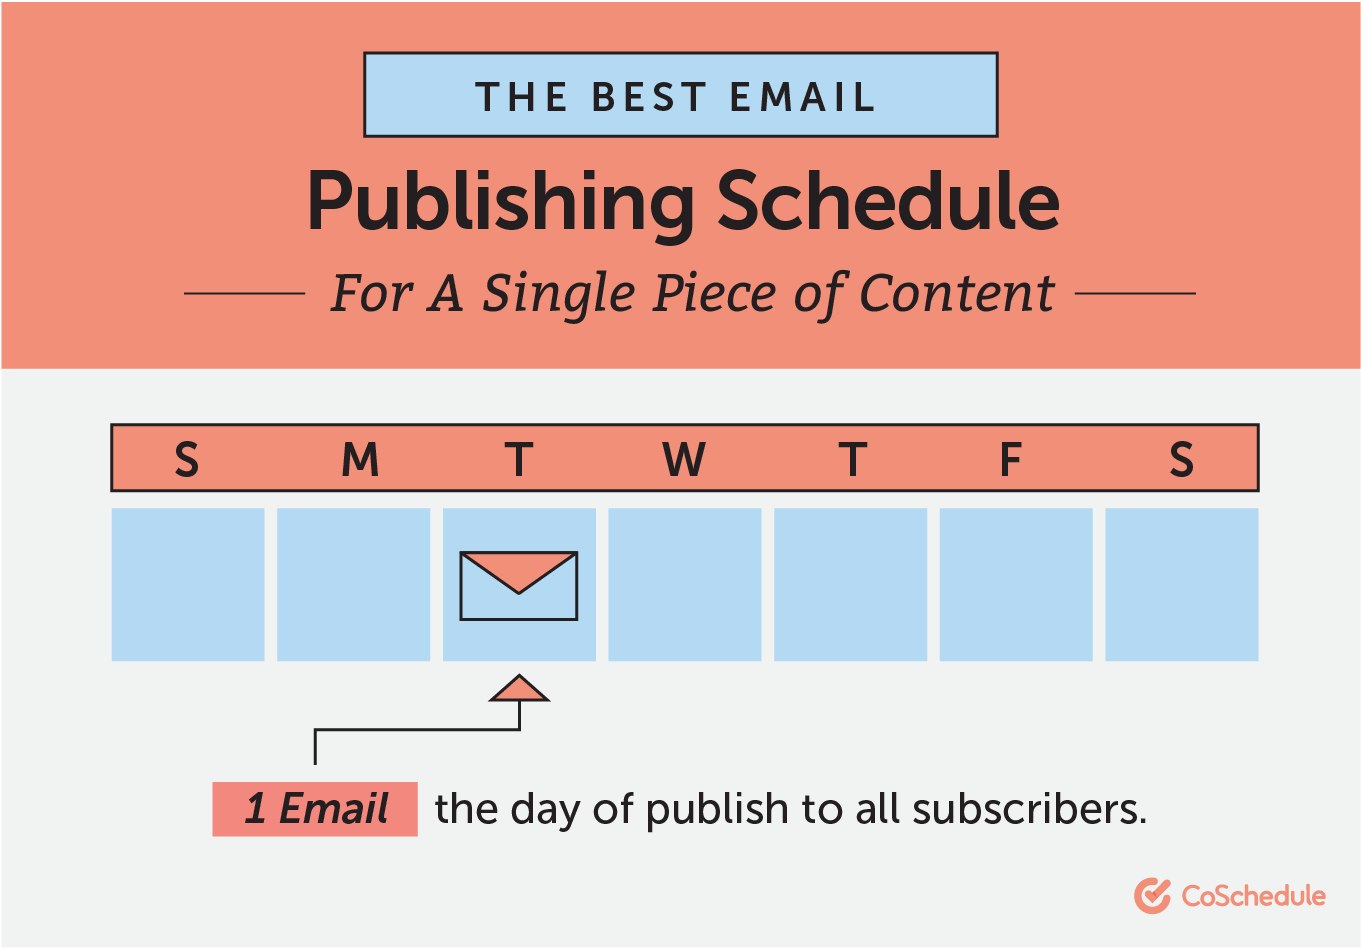 The Best Email Publishing Schedule for a Single Piece of Content